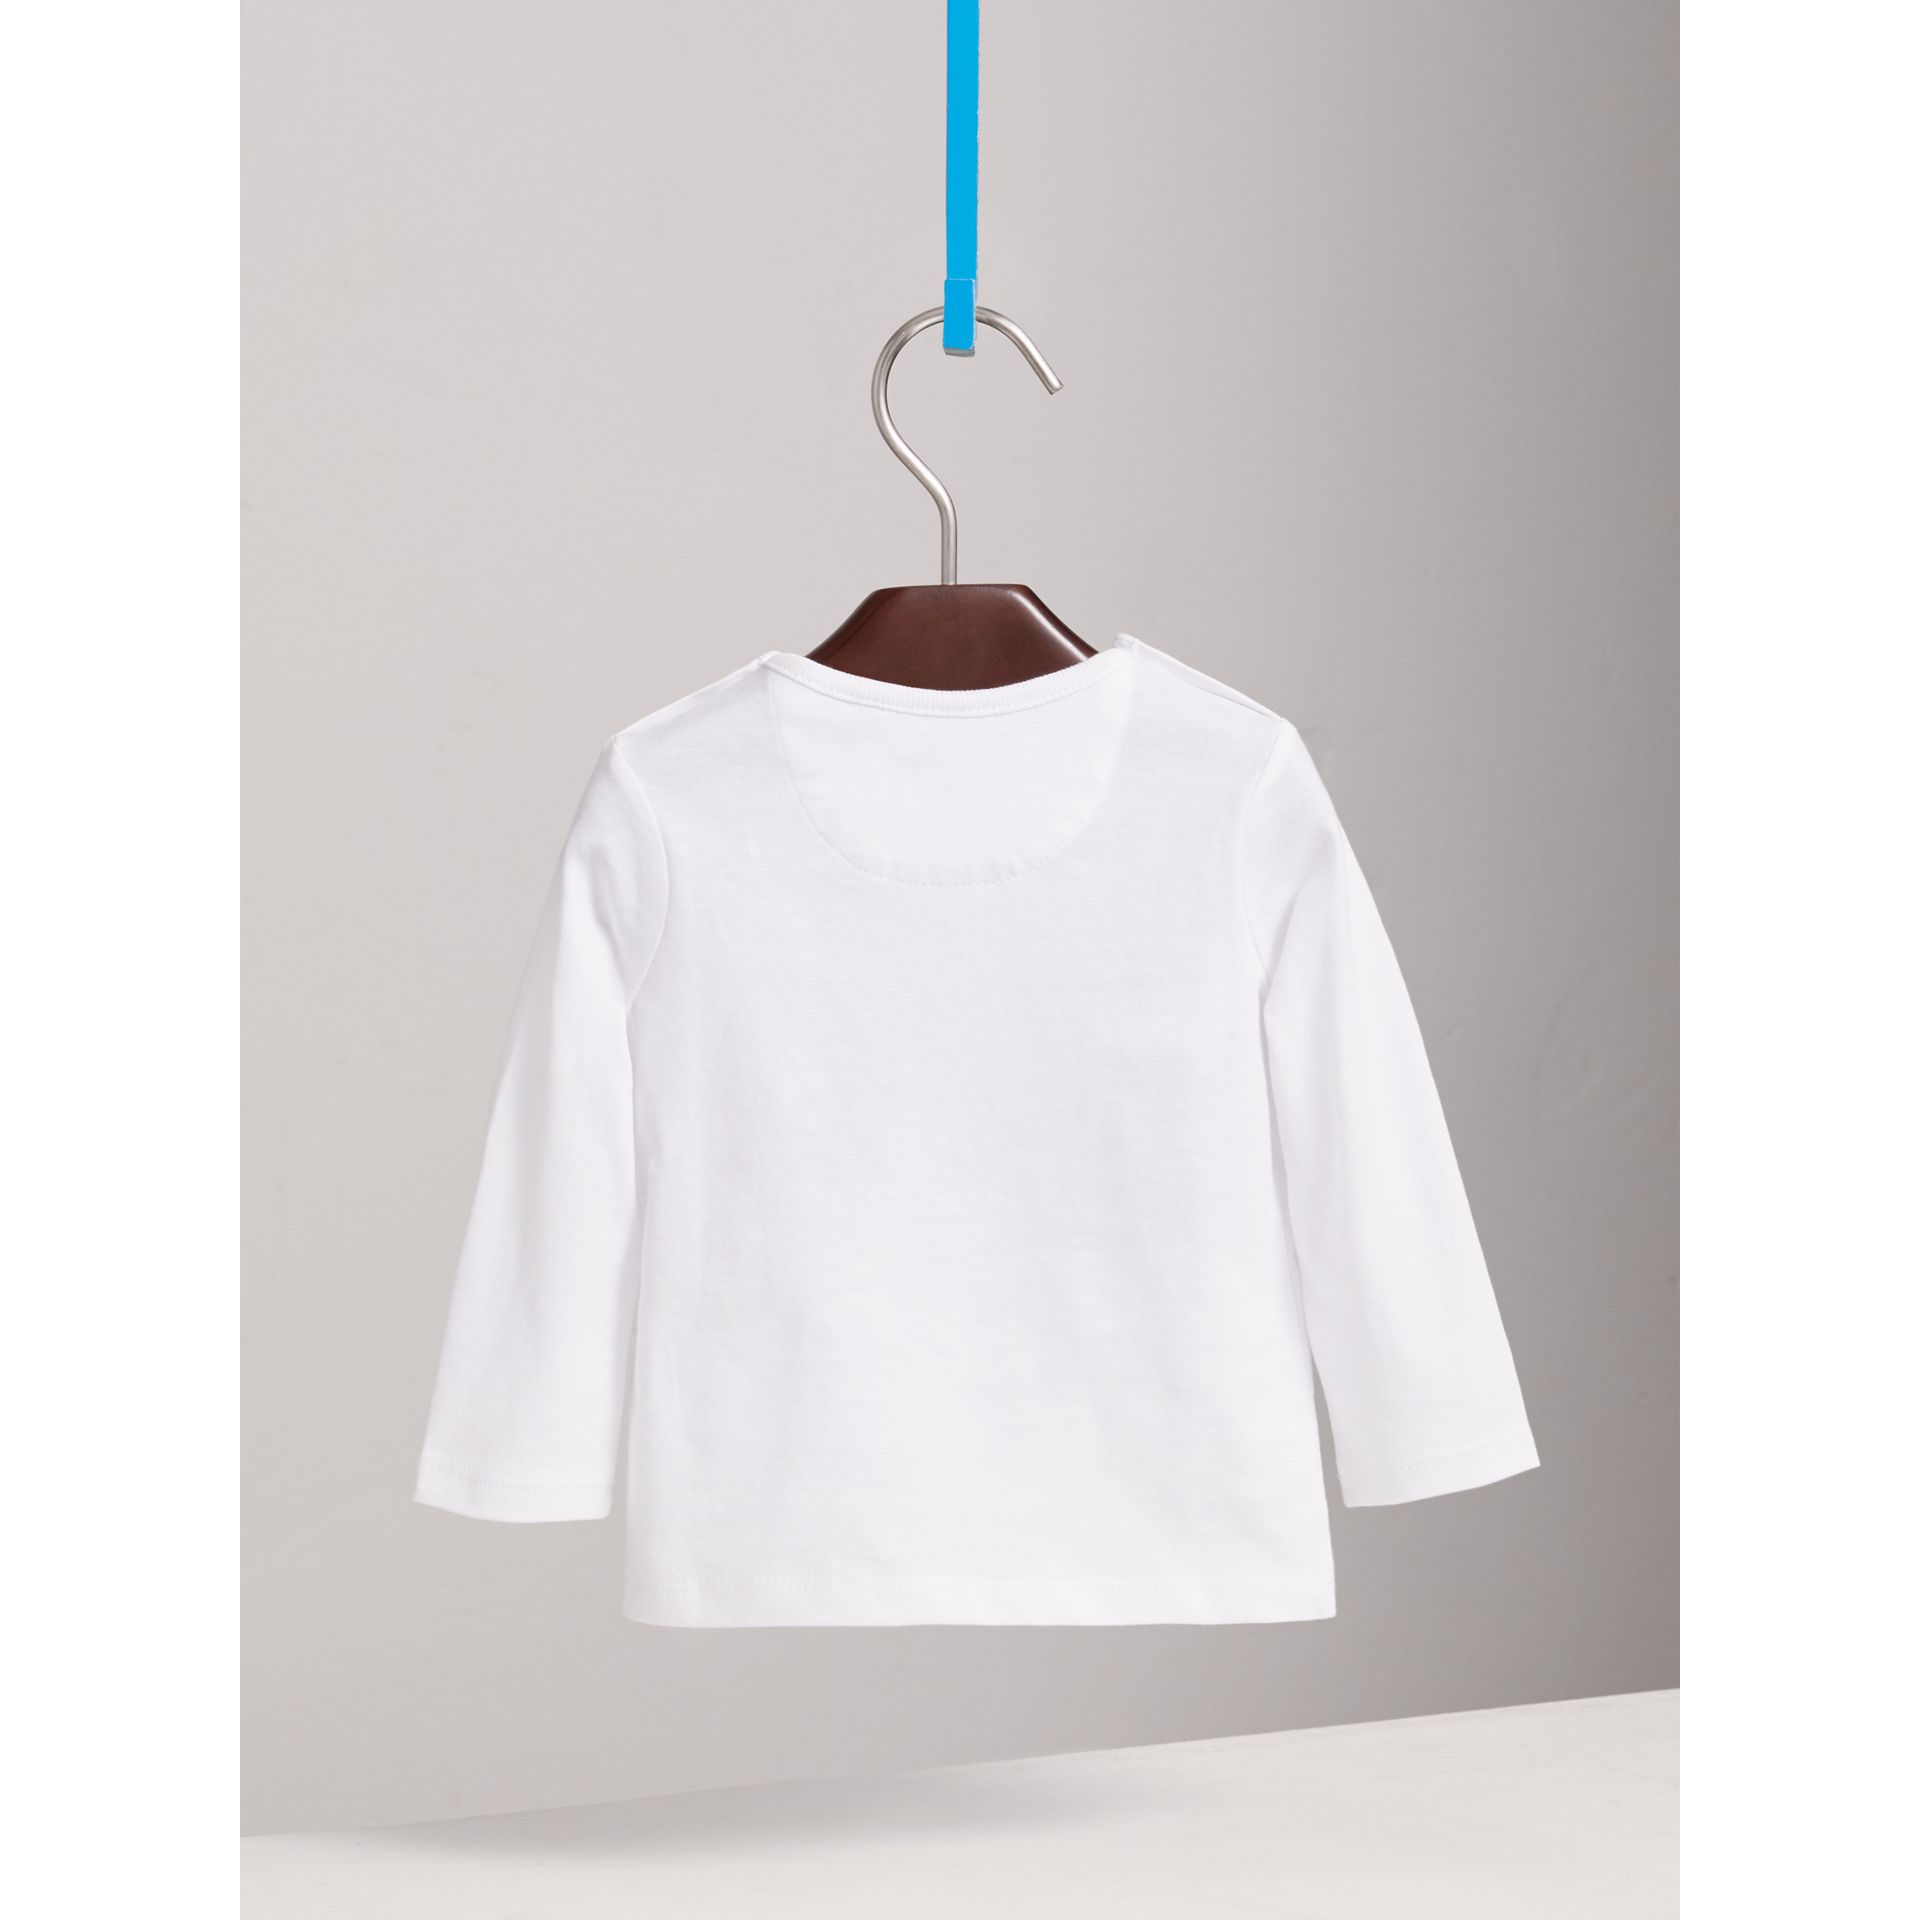 Check Pocket Cotton T-shirt in White | Burberry - gallery image 3